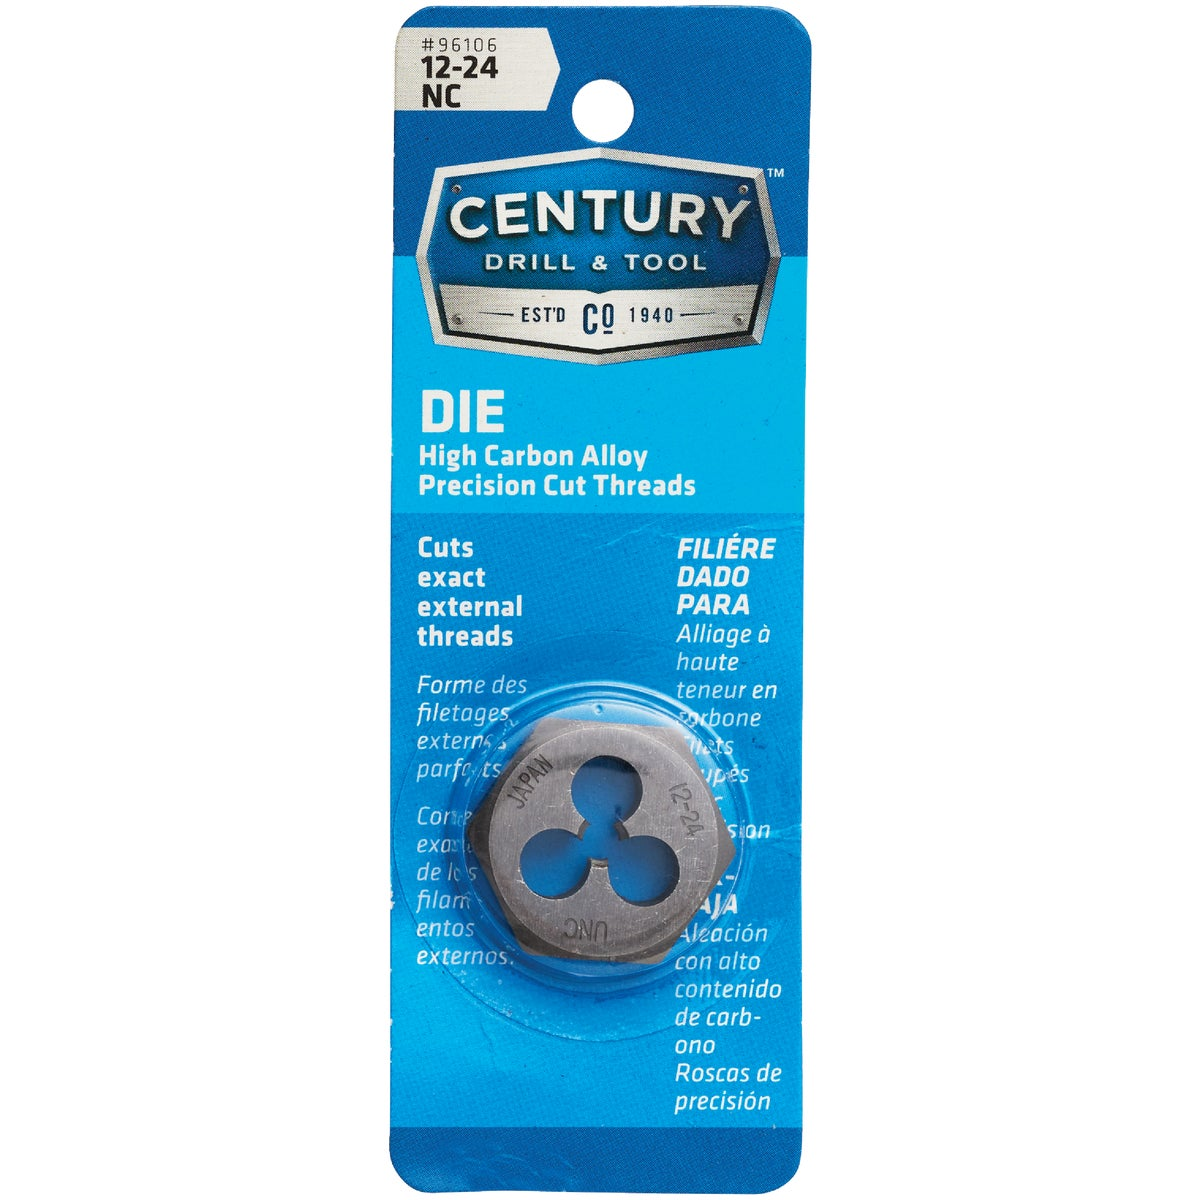 12X24 NC HEX DIE - 9332ZR by Irwin Industr Tool